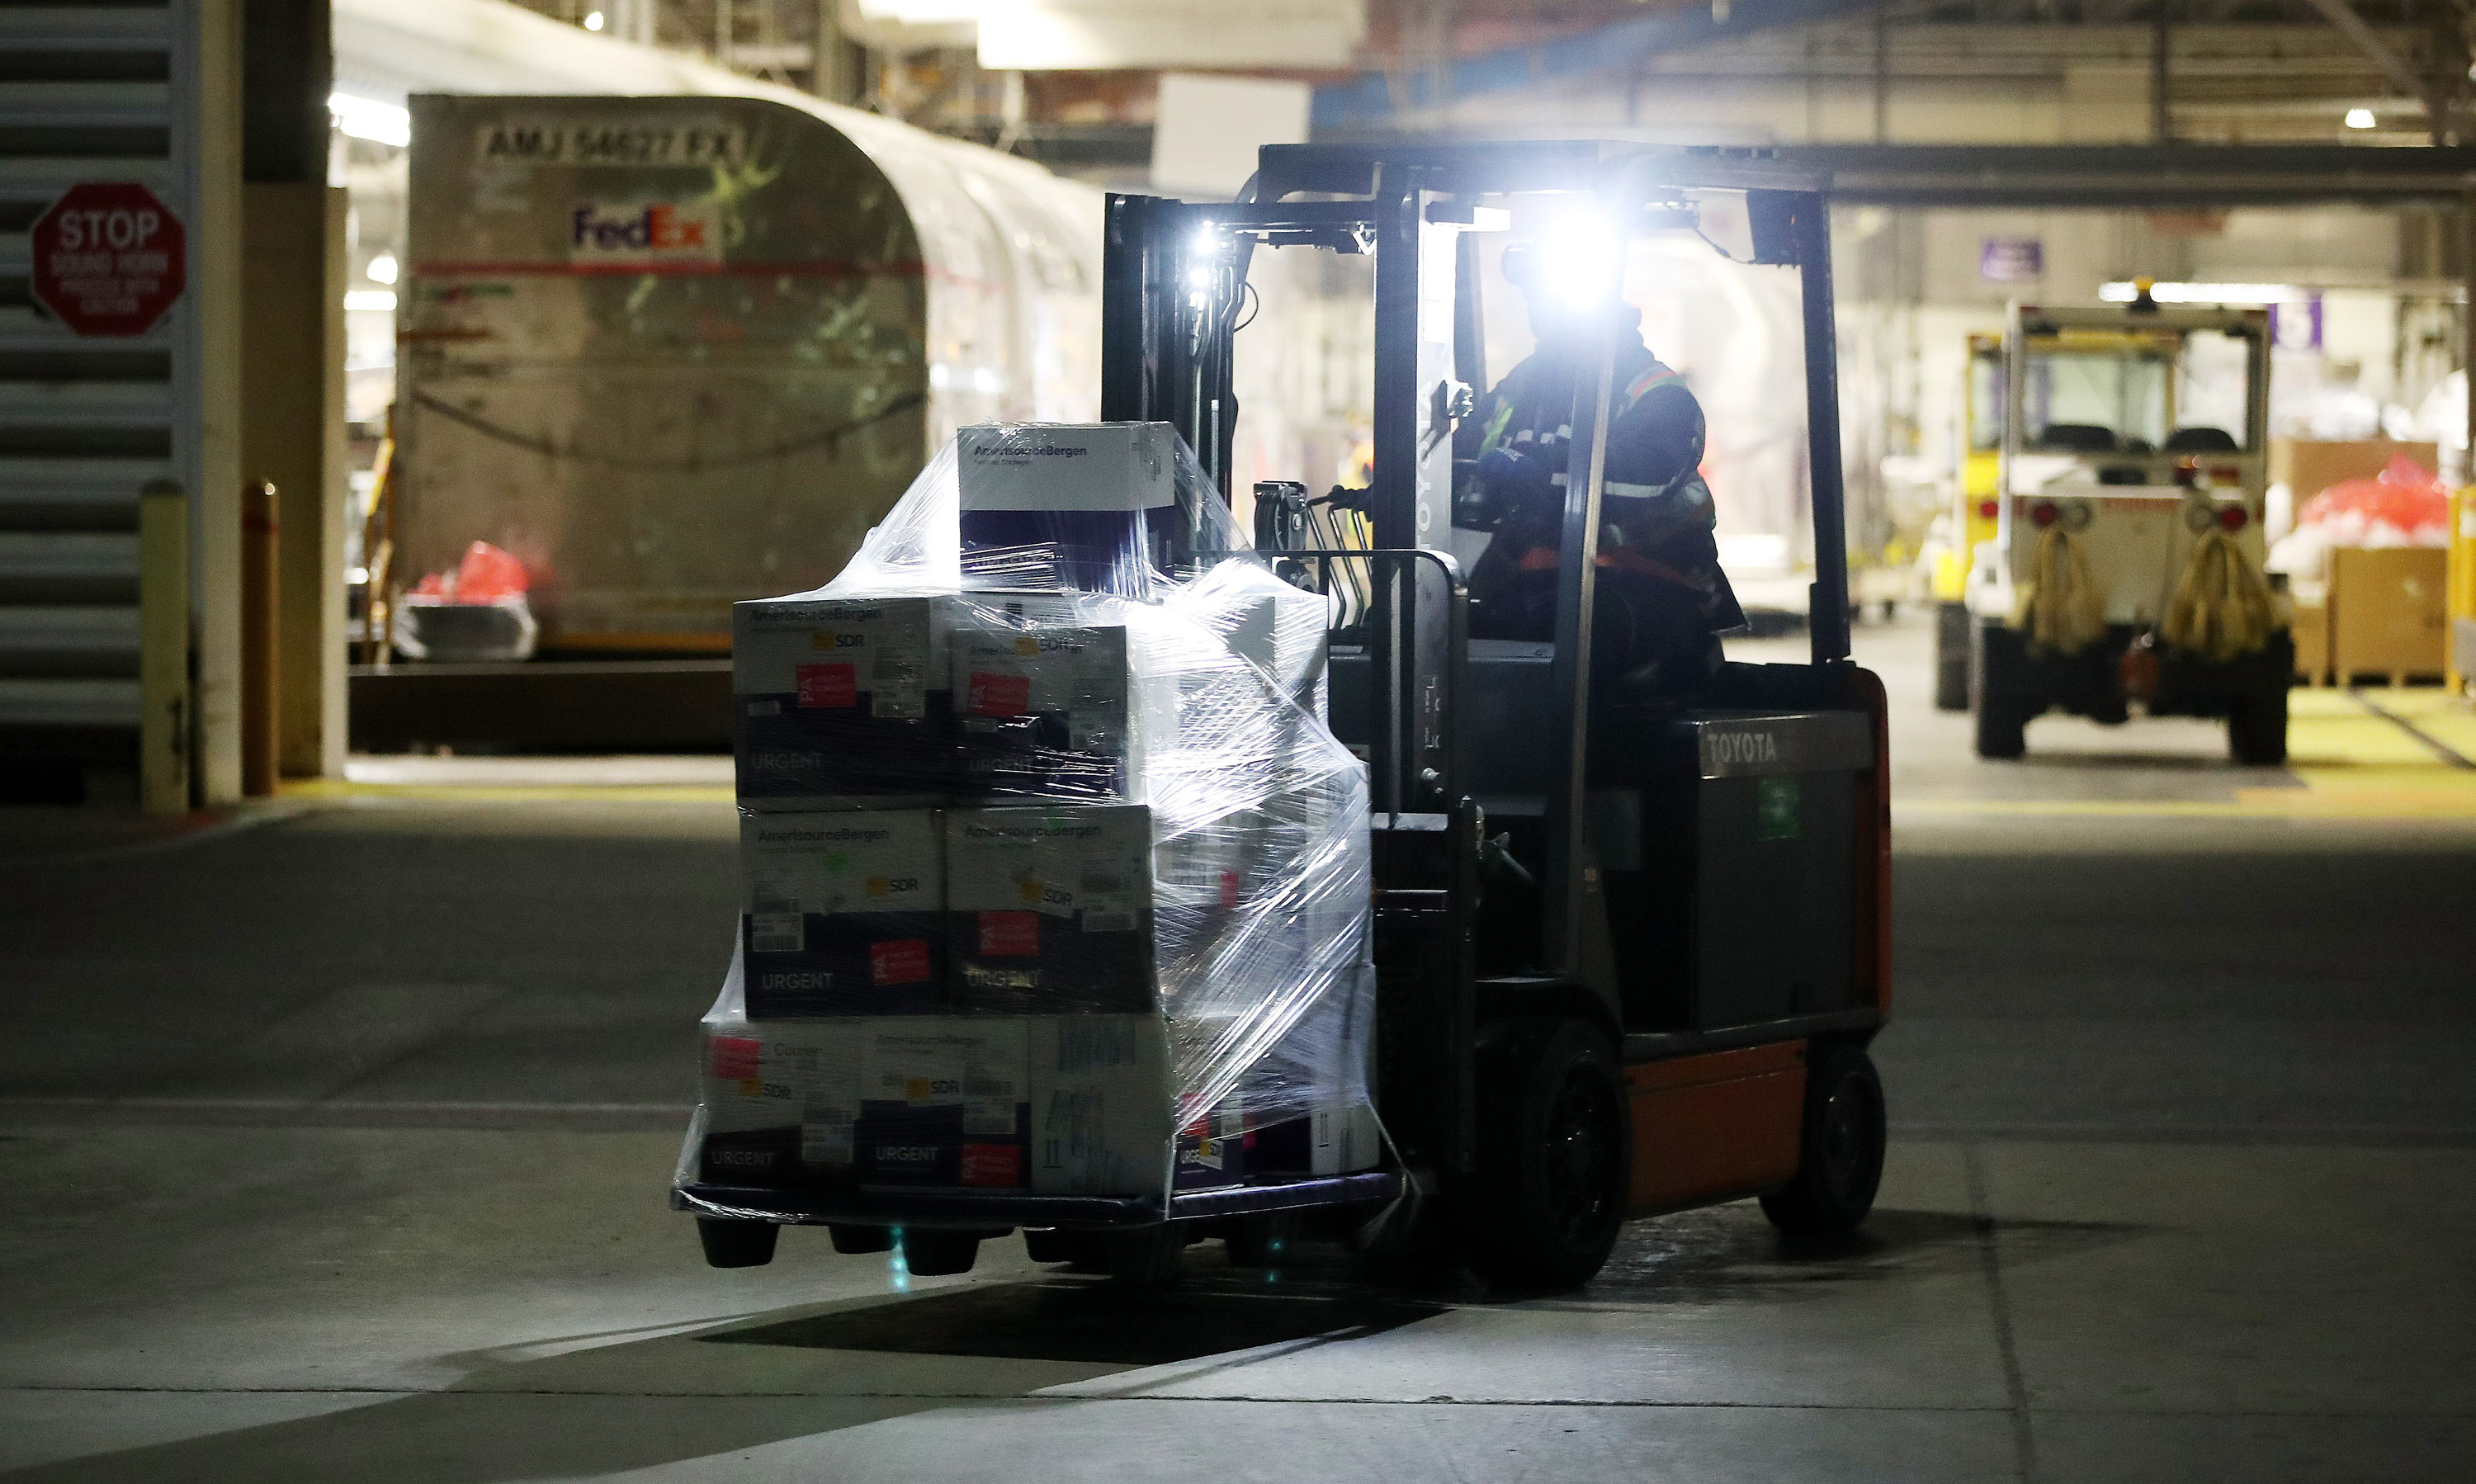 A skid of Moderna COVID-19 vaccines are moved on the tarmac at Pearson International Airport in Toronto, Ontario, on April 3.